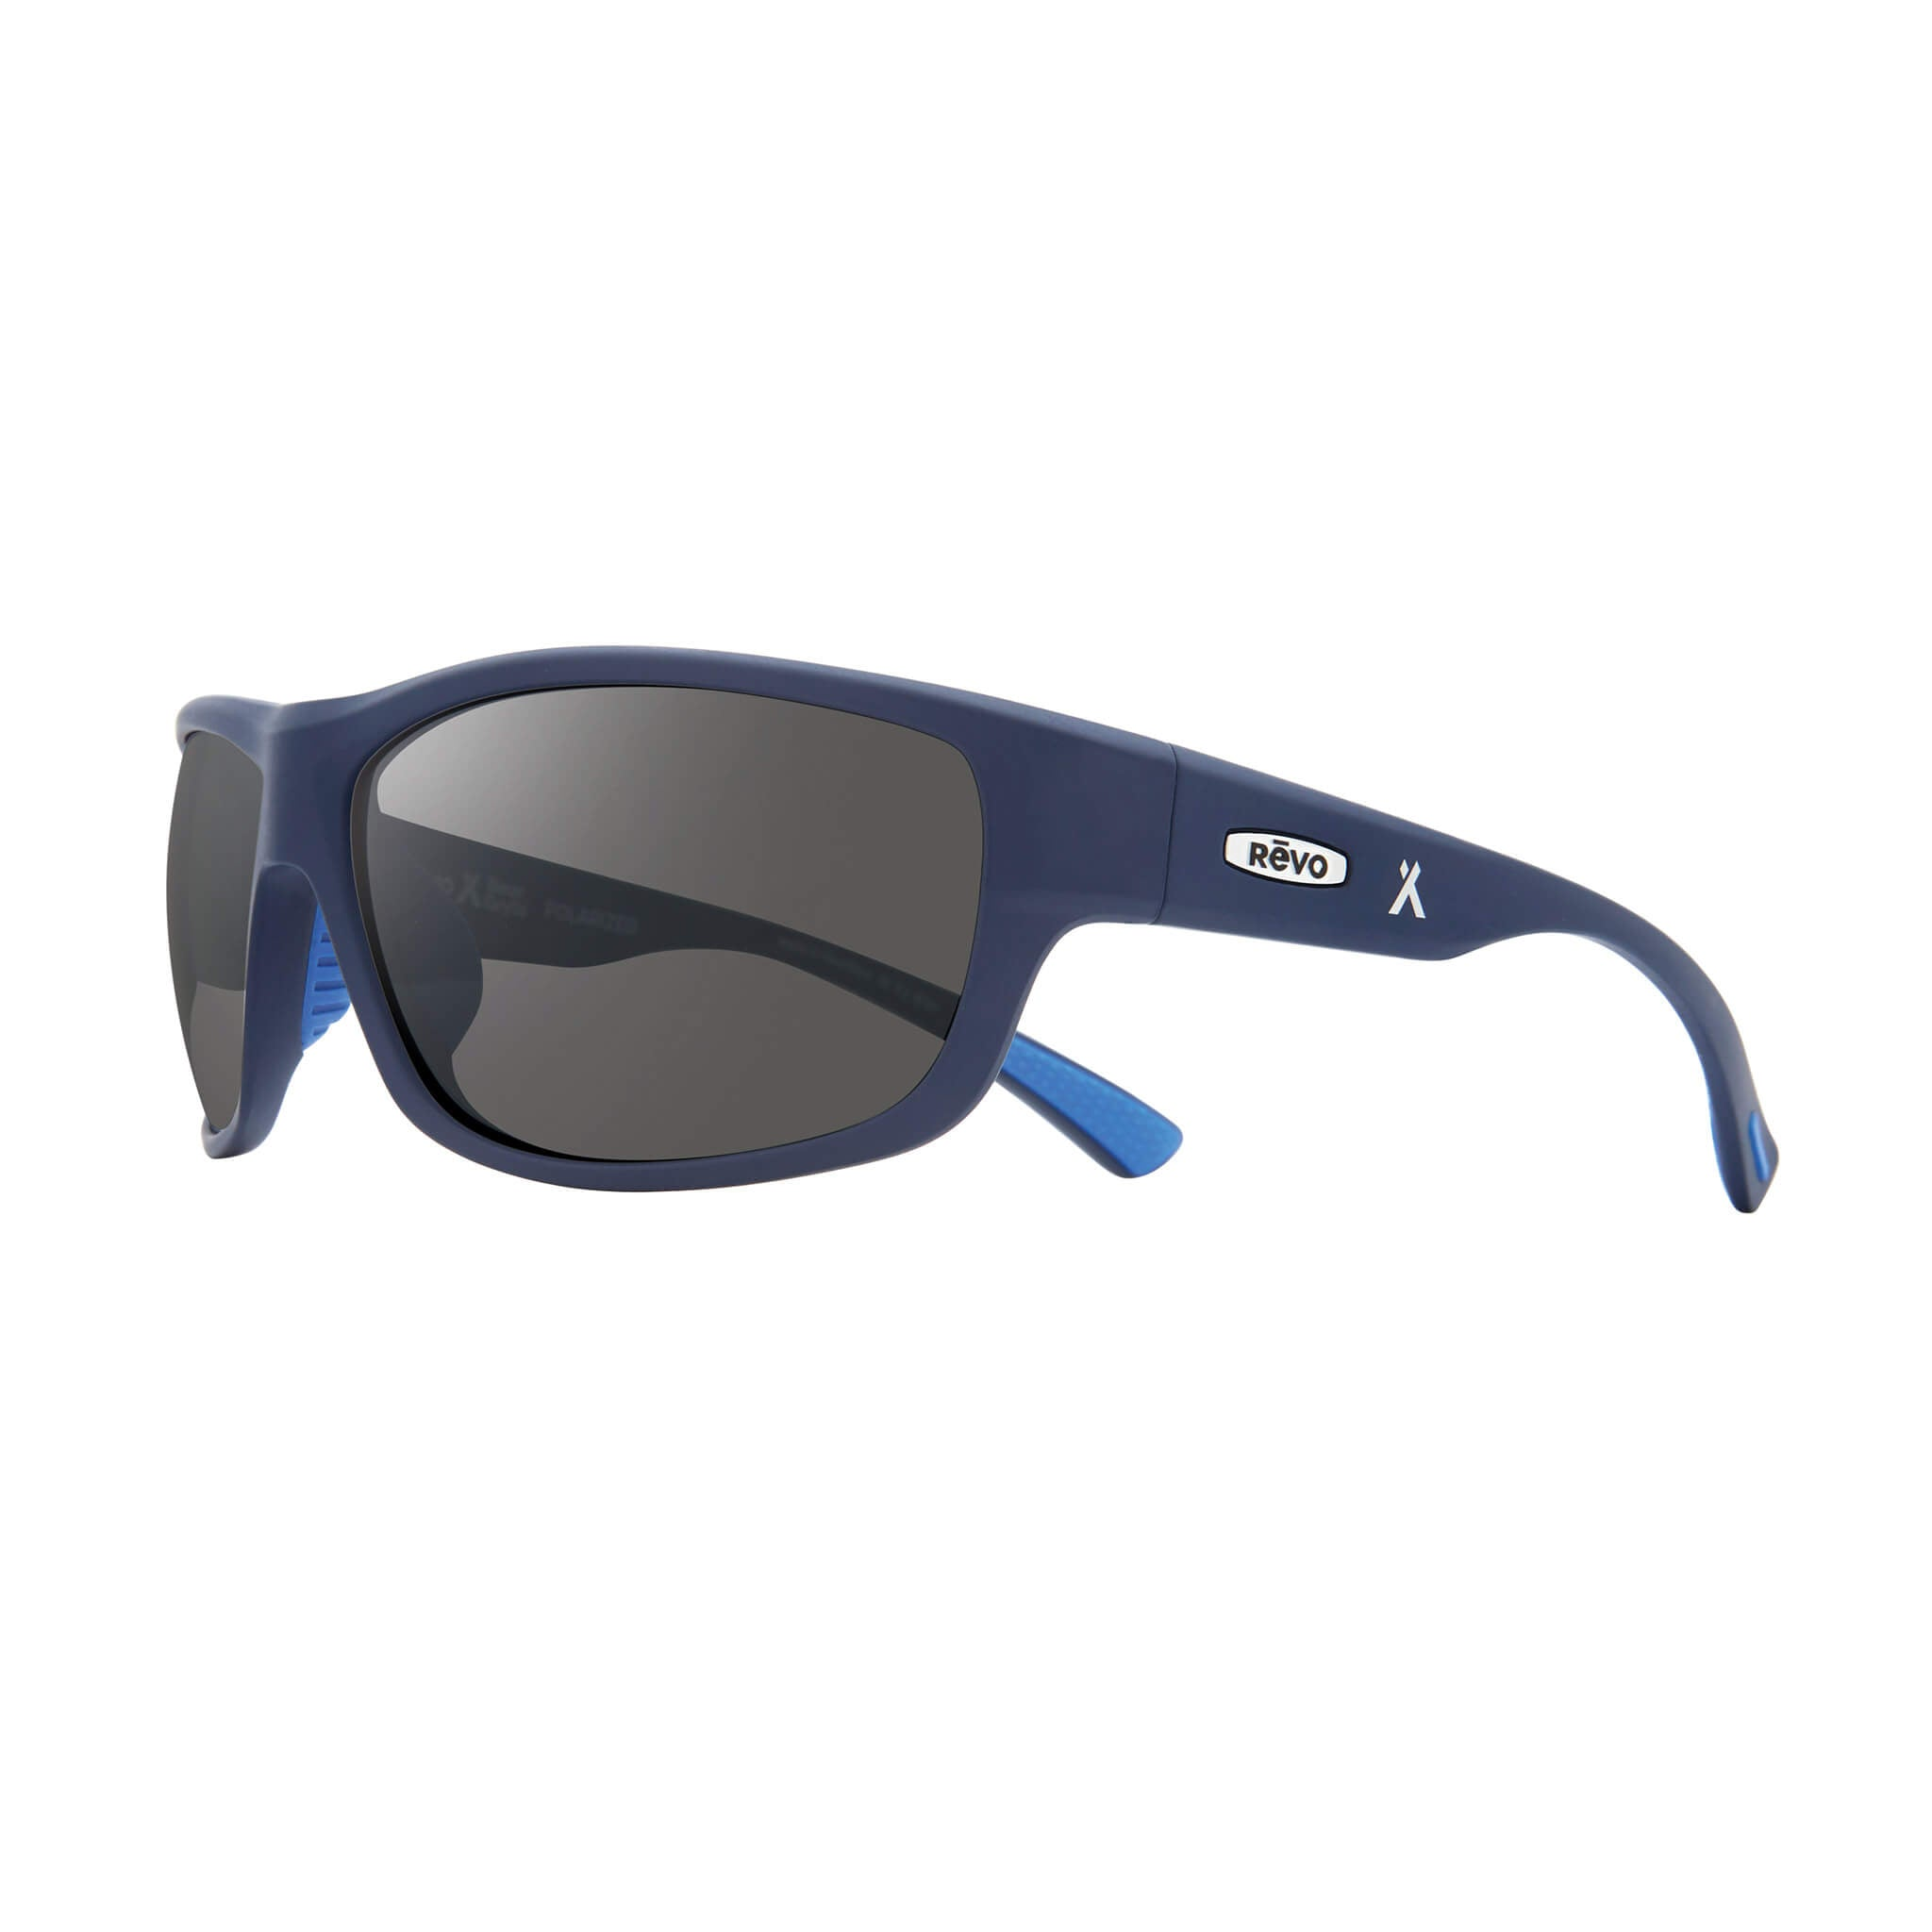 Blue + graphite lens:Side view of Bear Grylls Revo Caper Sunglasses